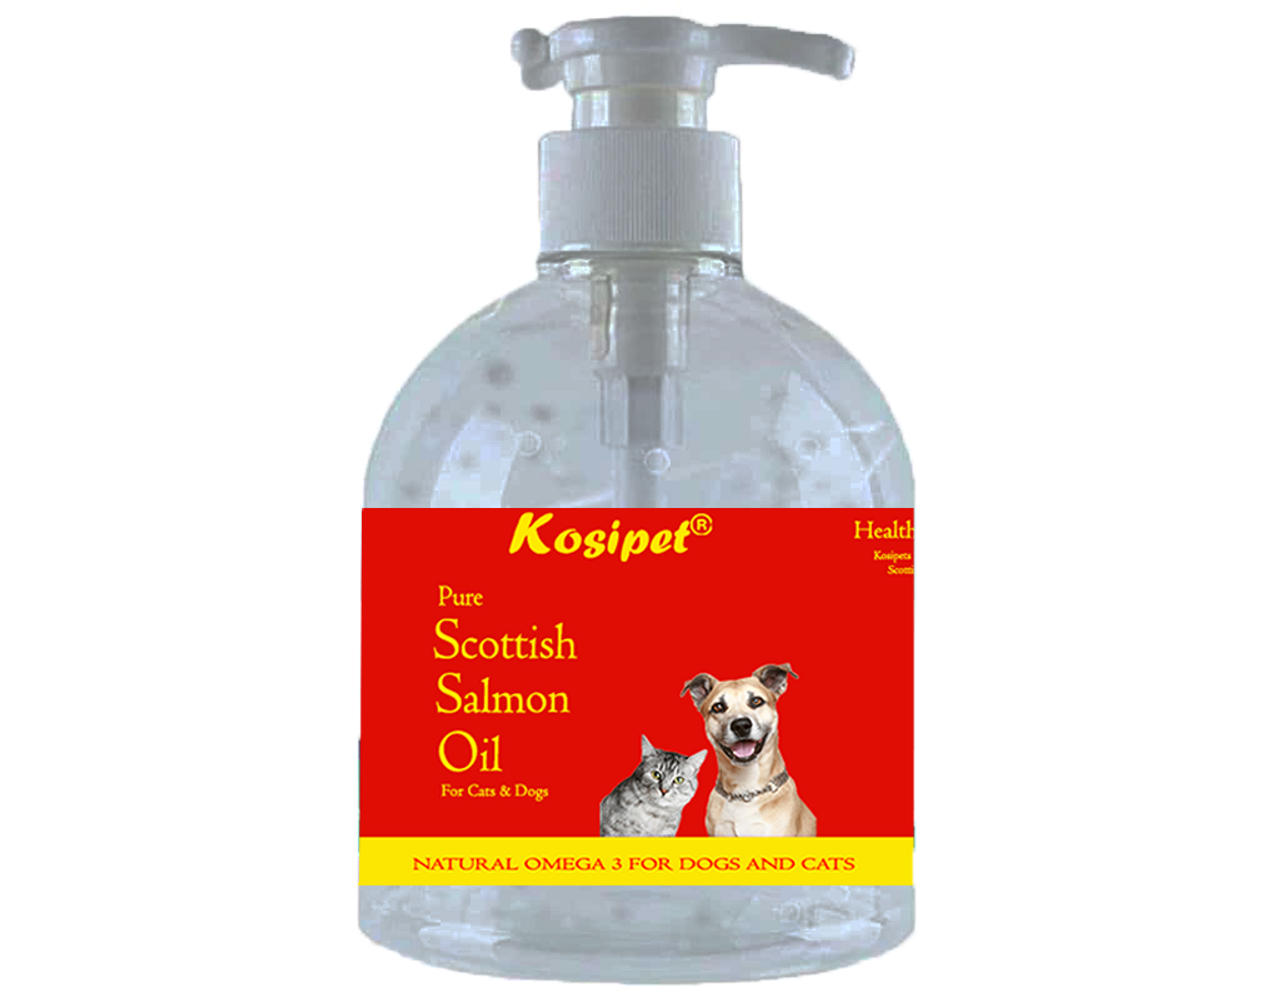 Kosipet Scottish Salmon Oil for Dogs and Cats 1 Litre